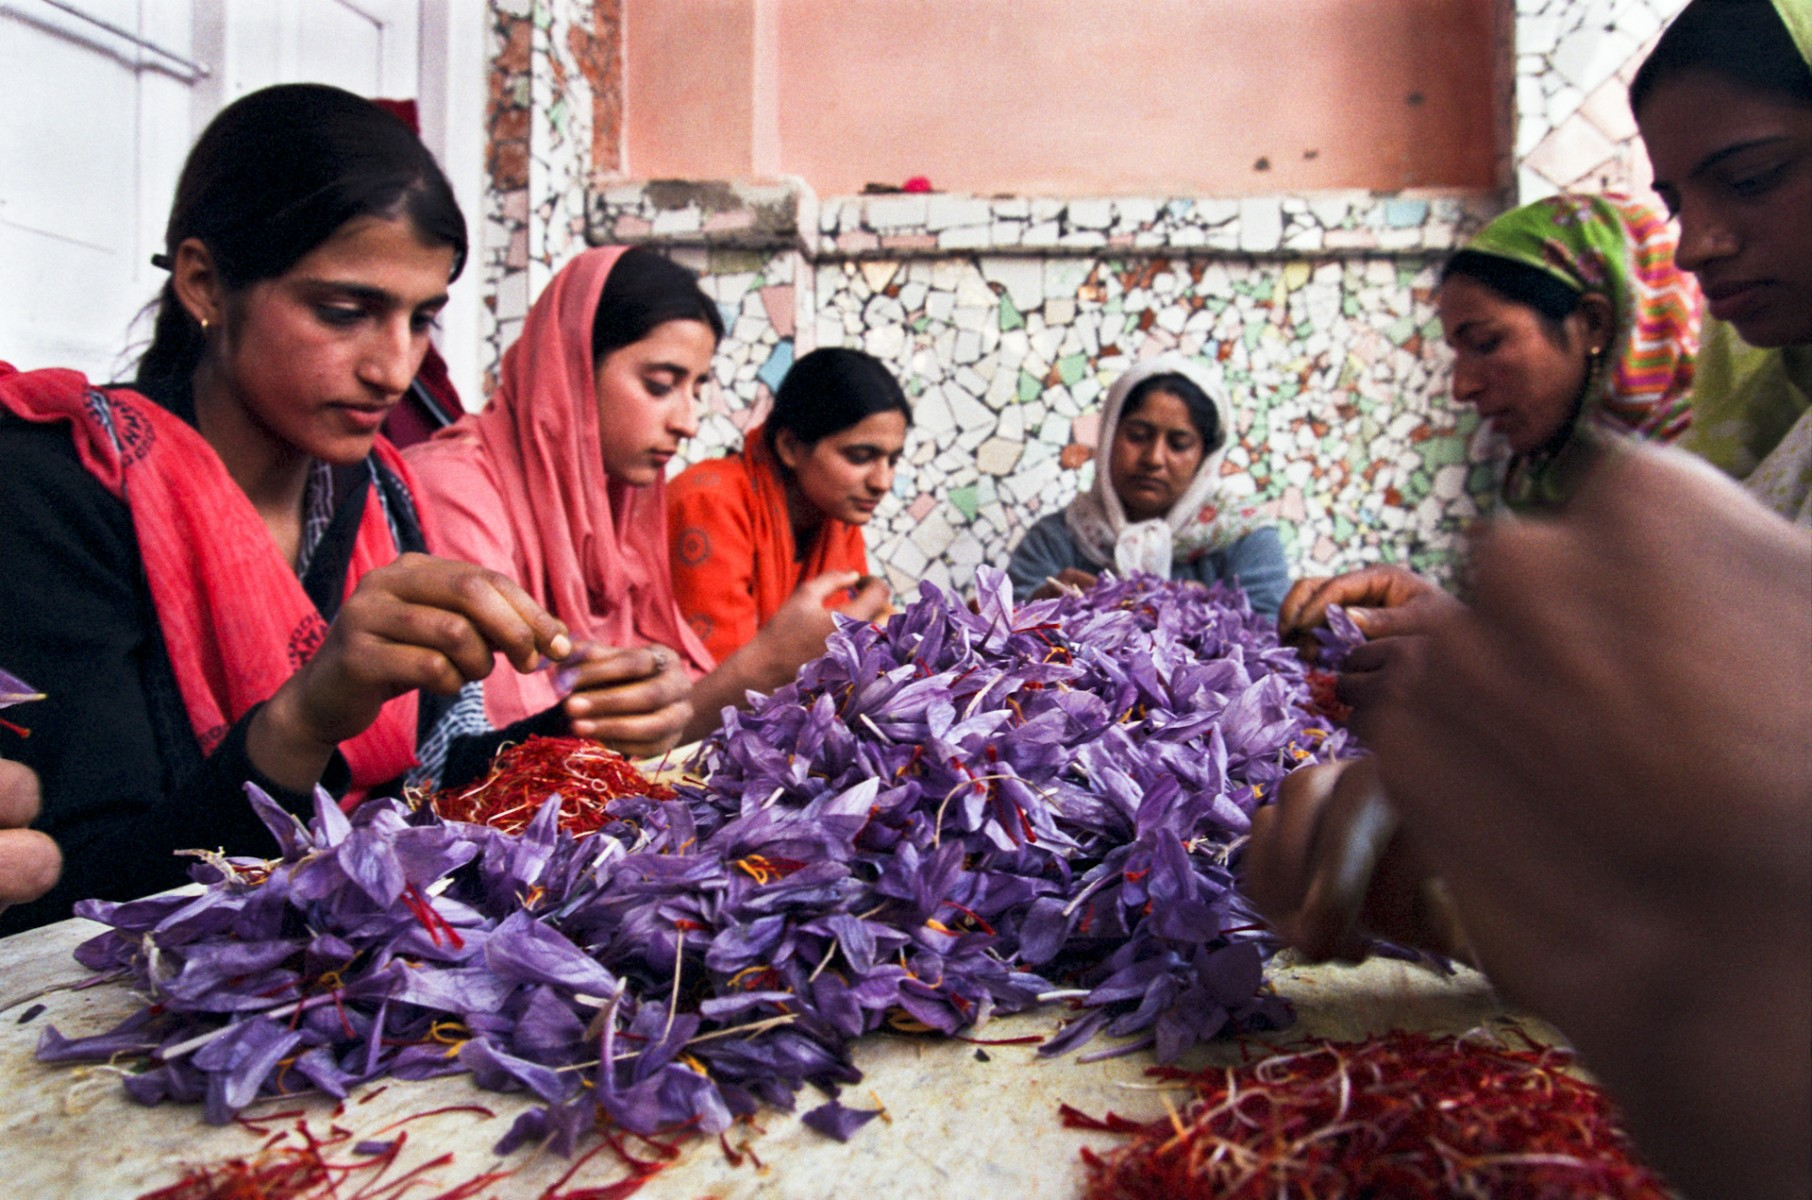 Sorting the saffron at home